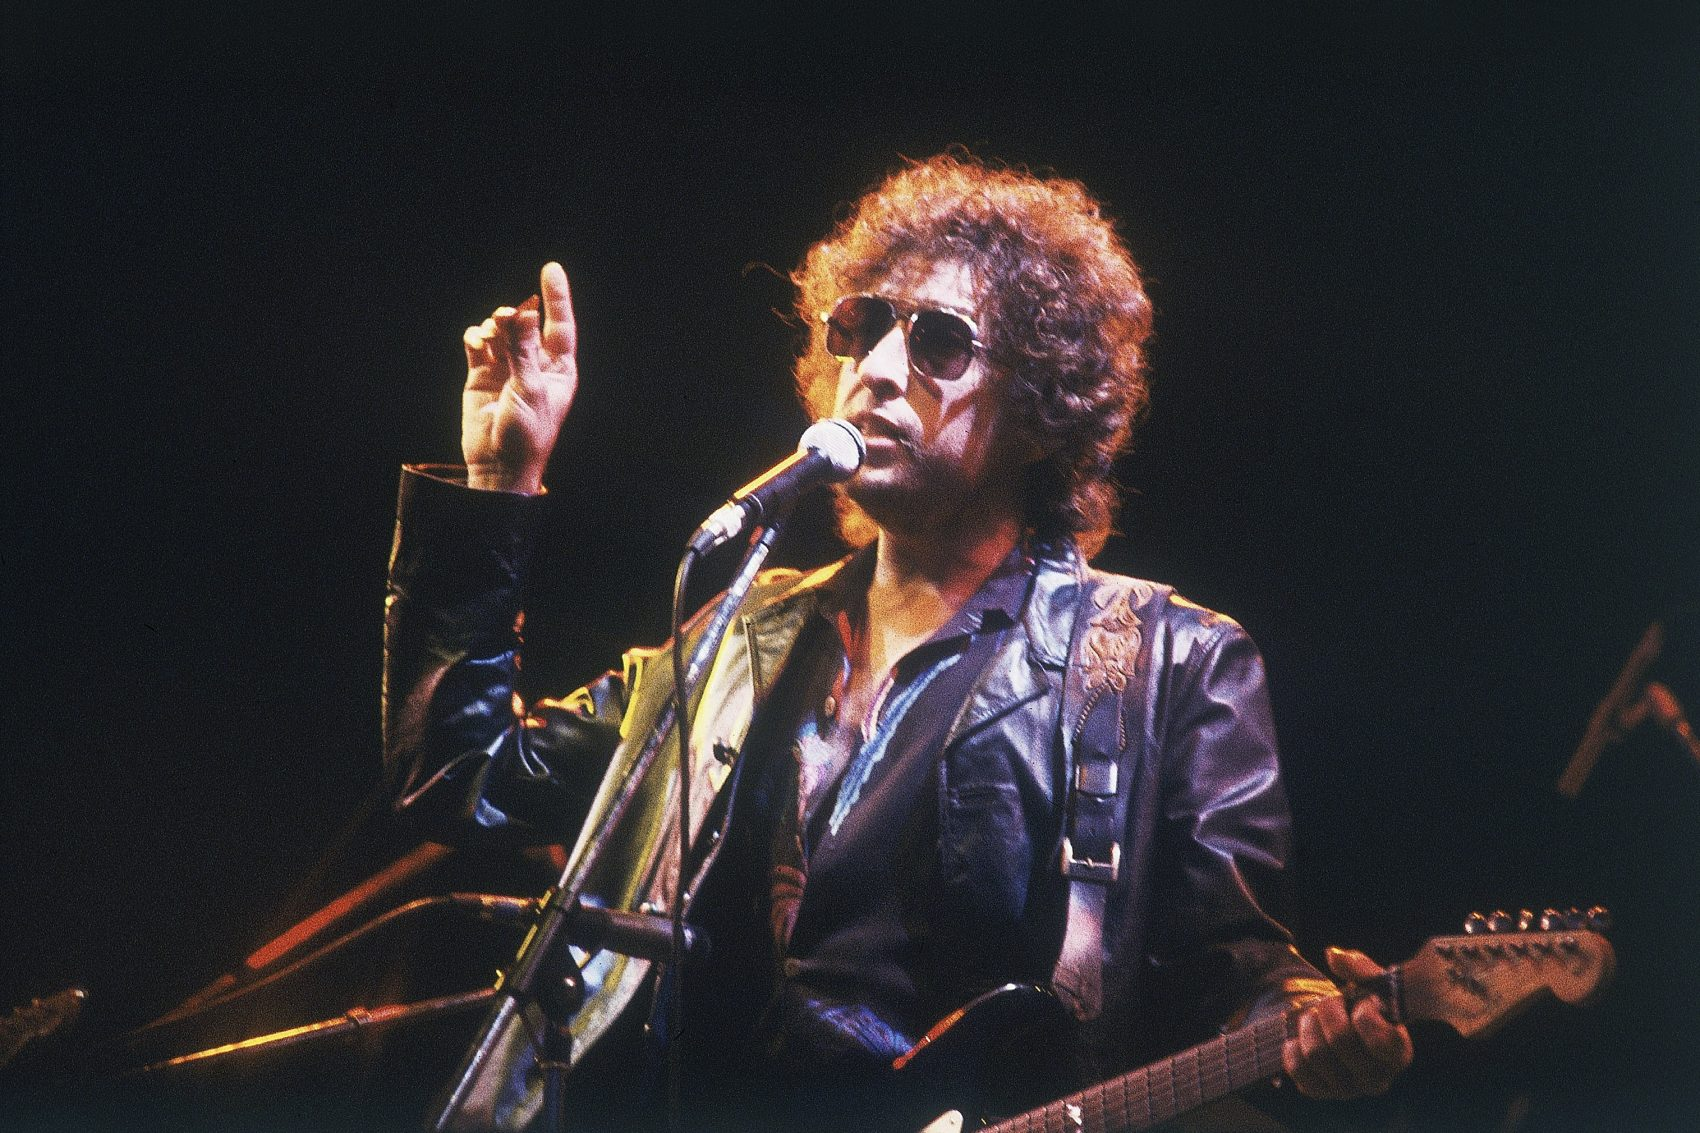 Bob Dylan performs at the Olympic Stadium in Colombes, France, before an estimated 40,000 fans, June 23, 1981. (AP)